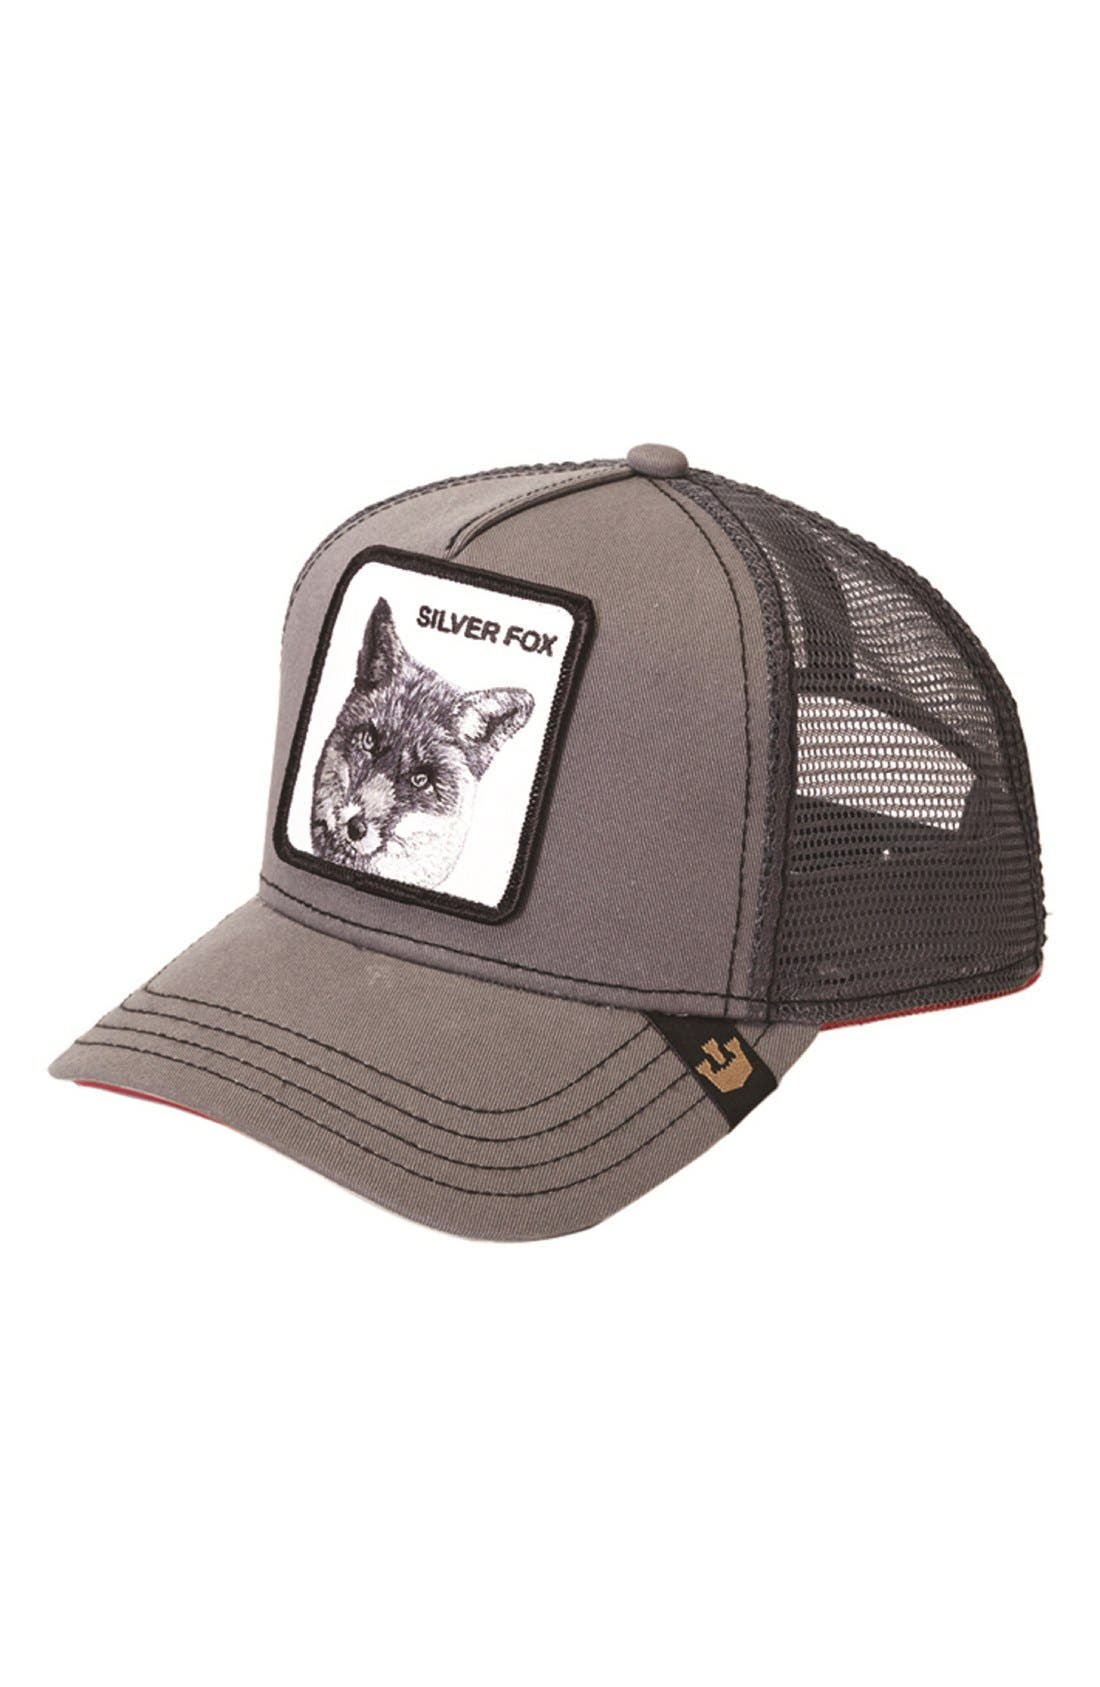 Goorin Brothers 'Silver Fox' Trucker Hat